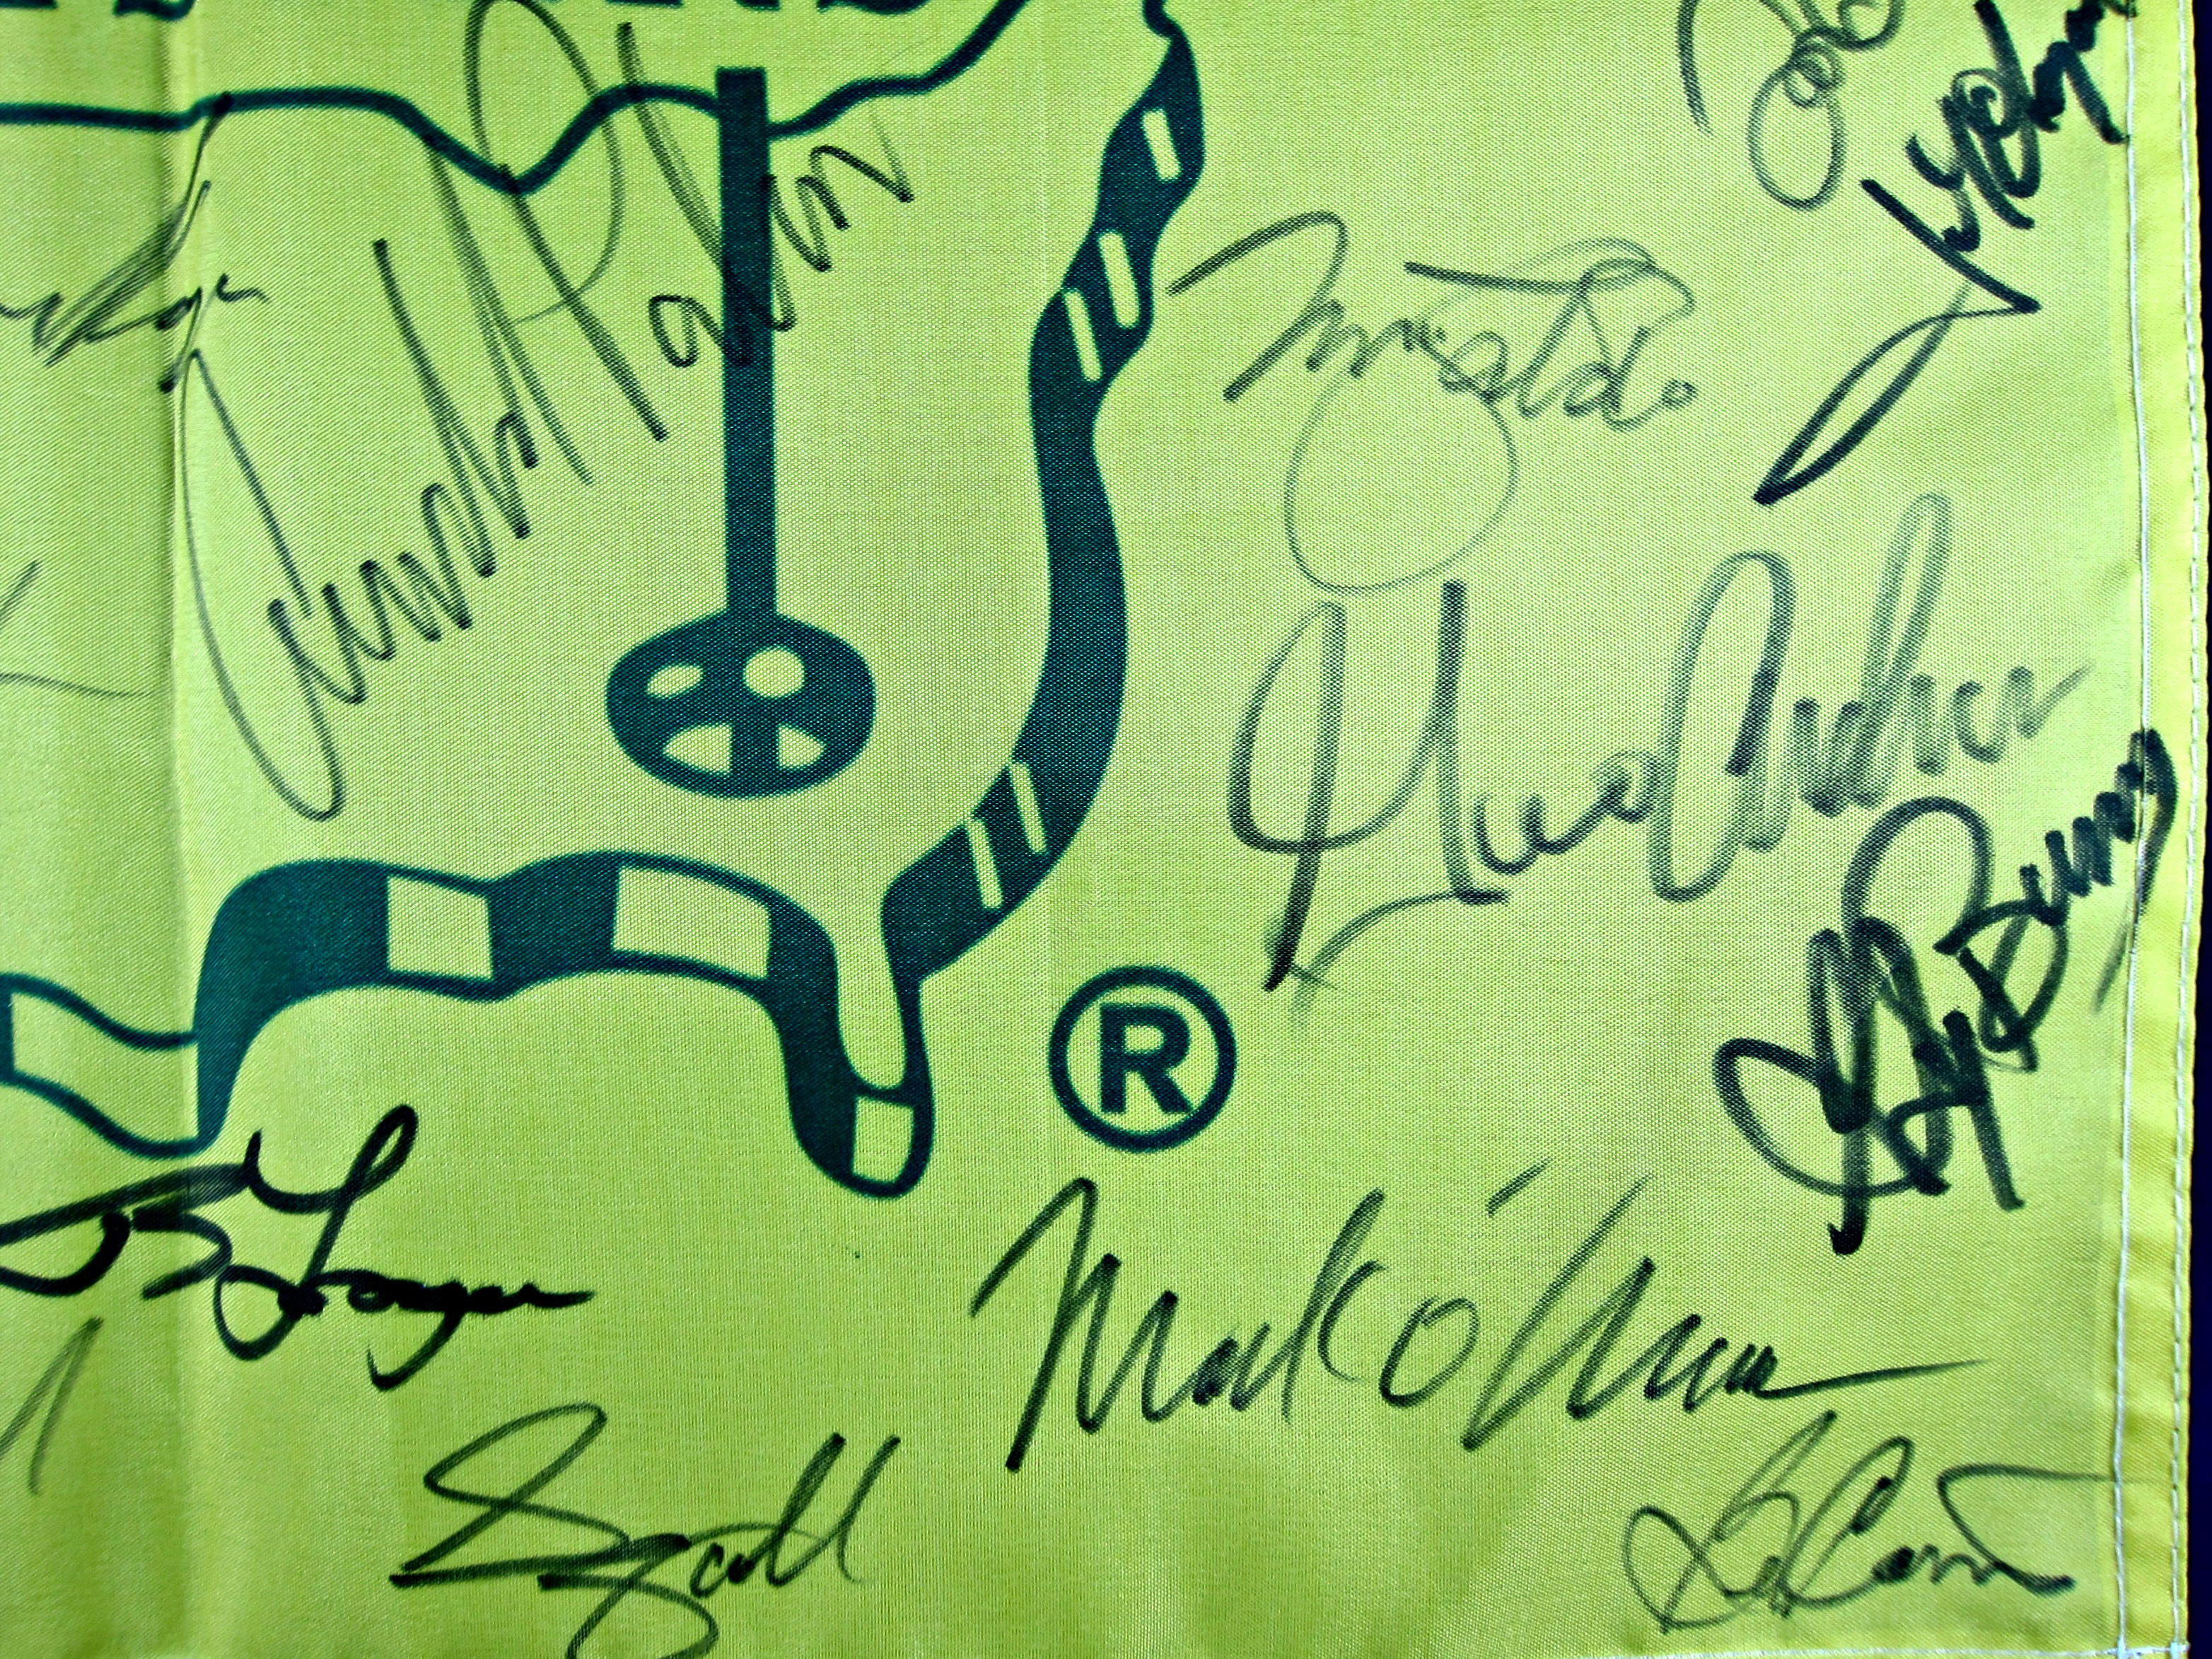 Masters Champions Autographed Flag